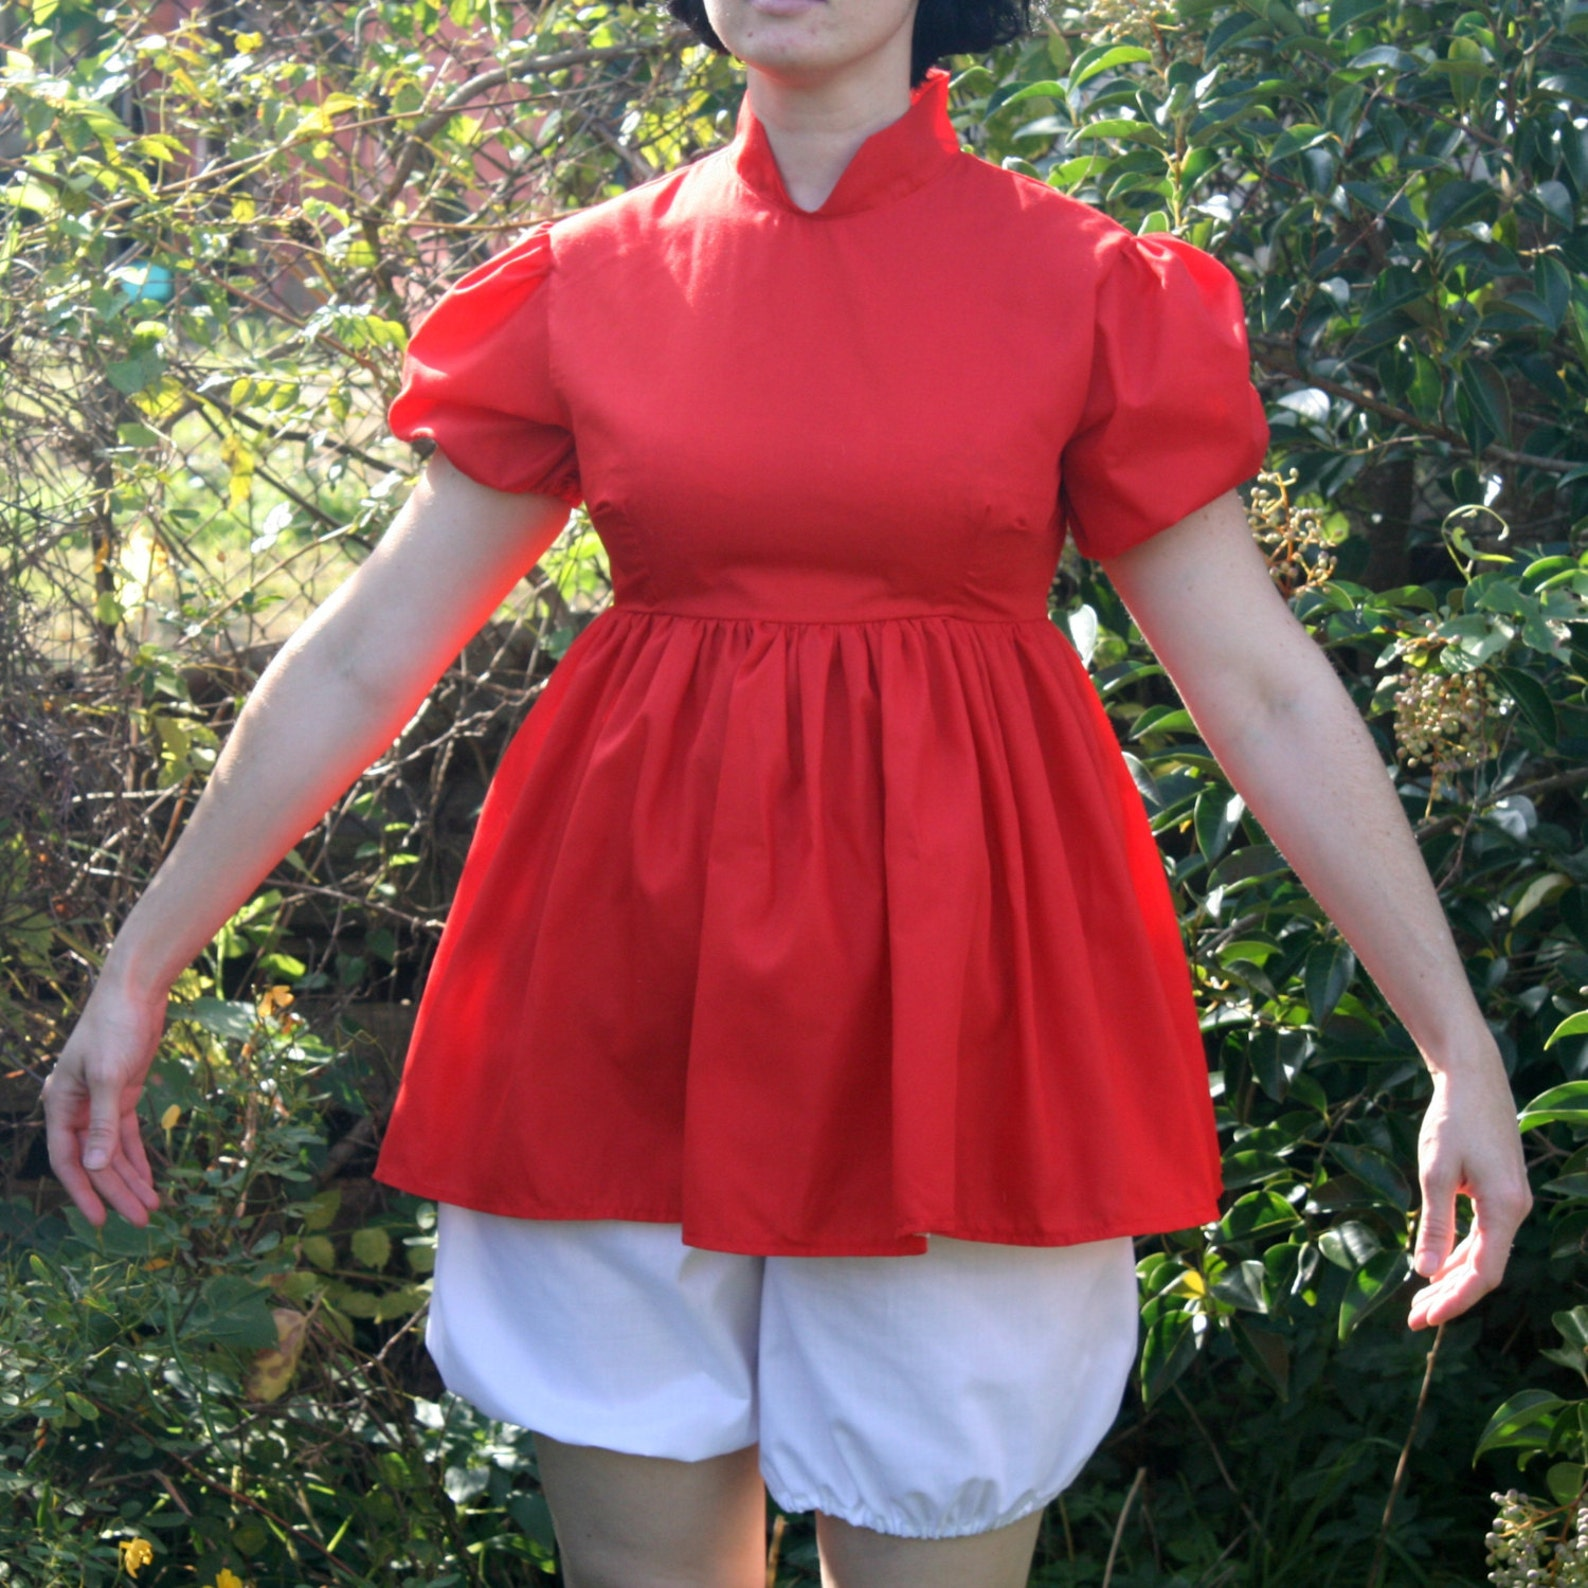 Adult Ponyo Cosplay Costume - Dress and Bloomers